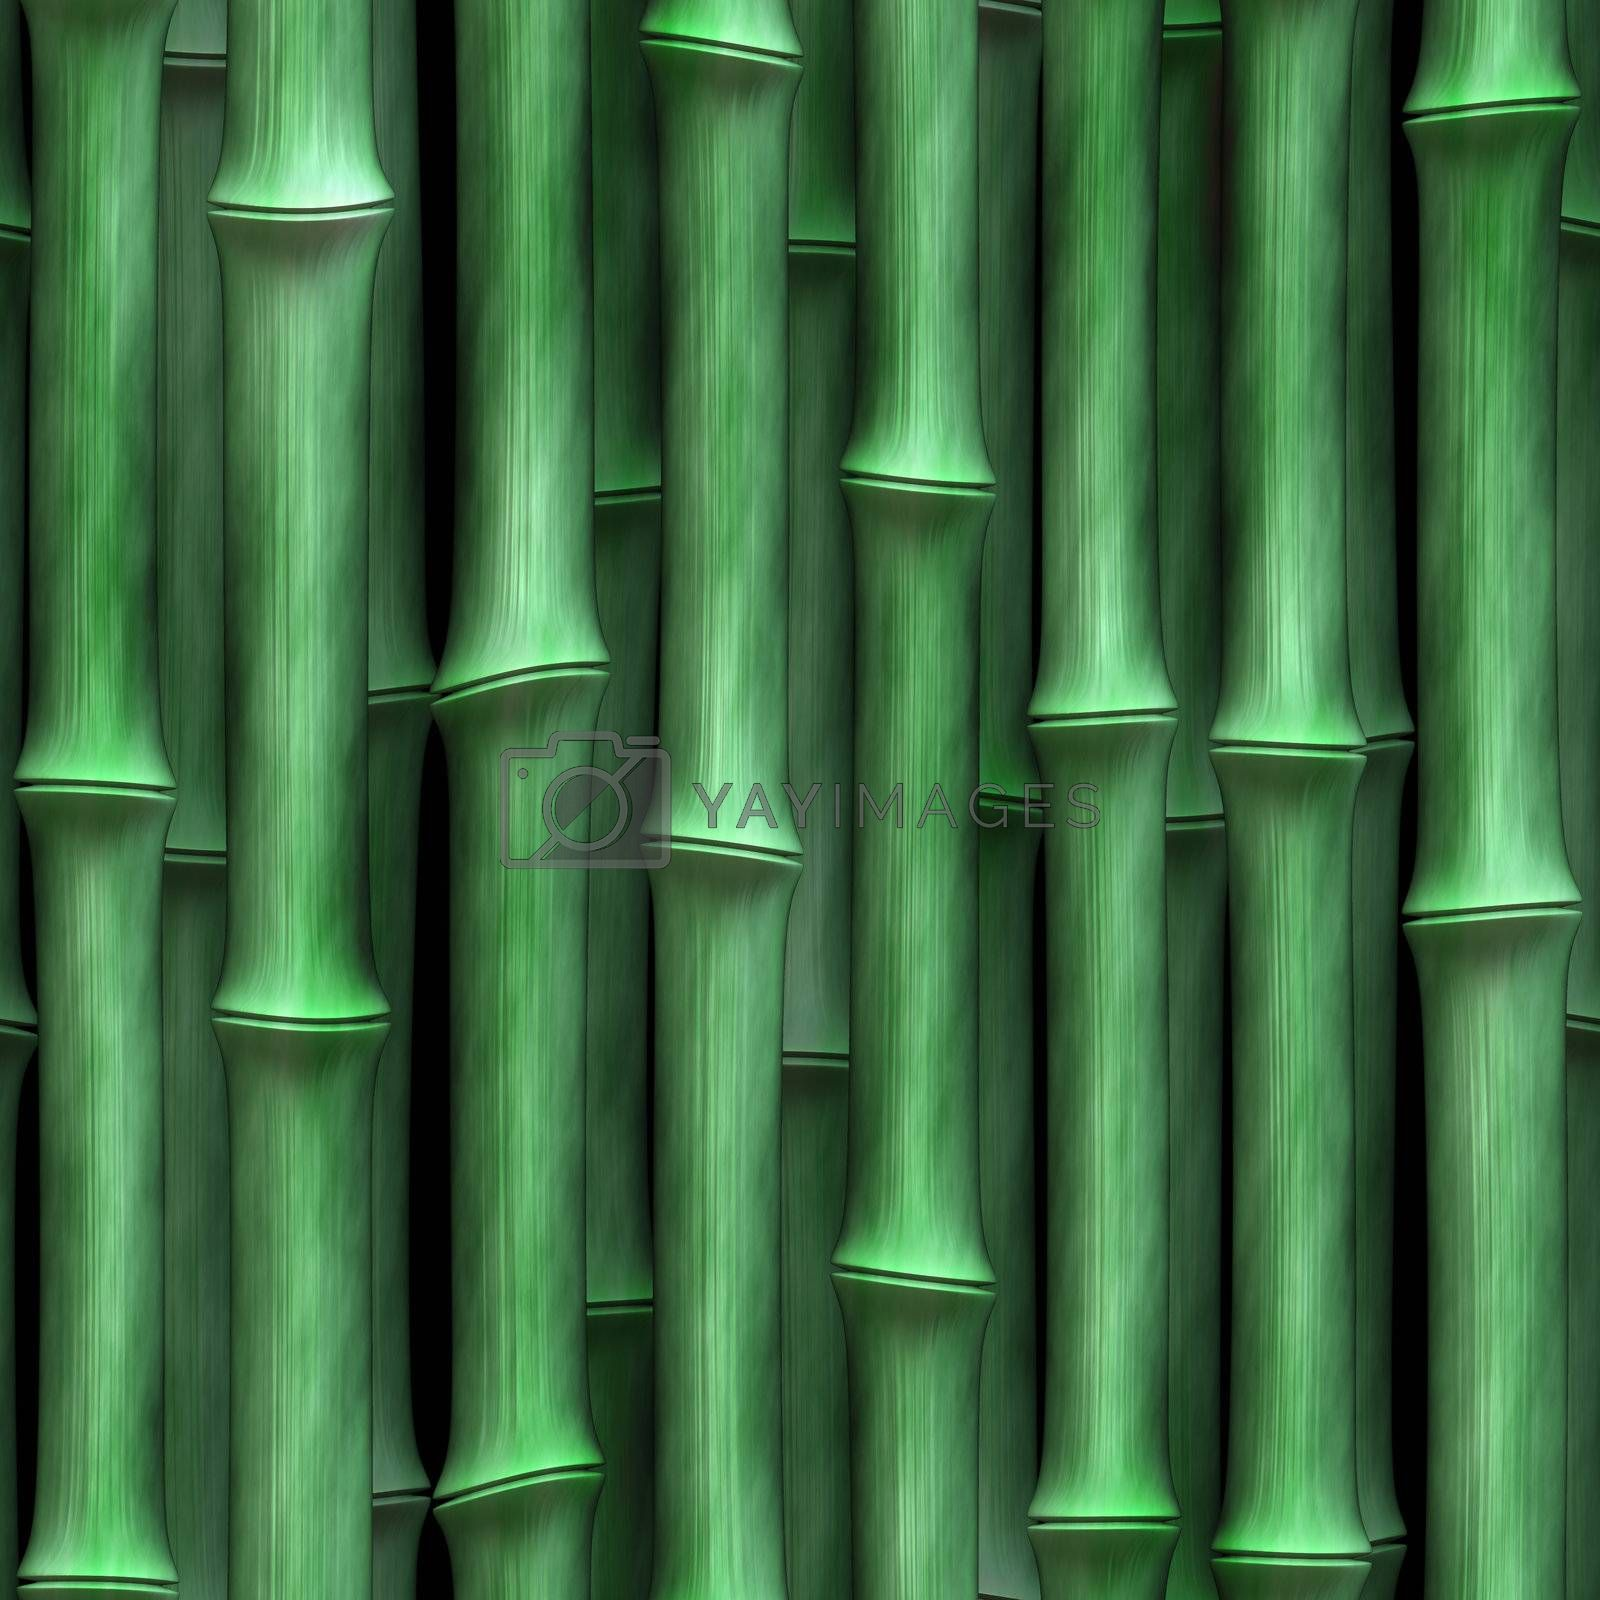 green, smooth bamboo background, tiles seamlessly